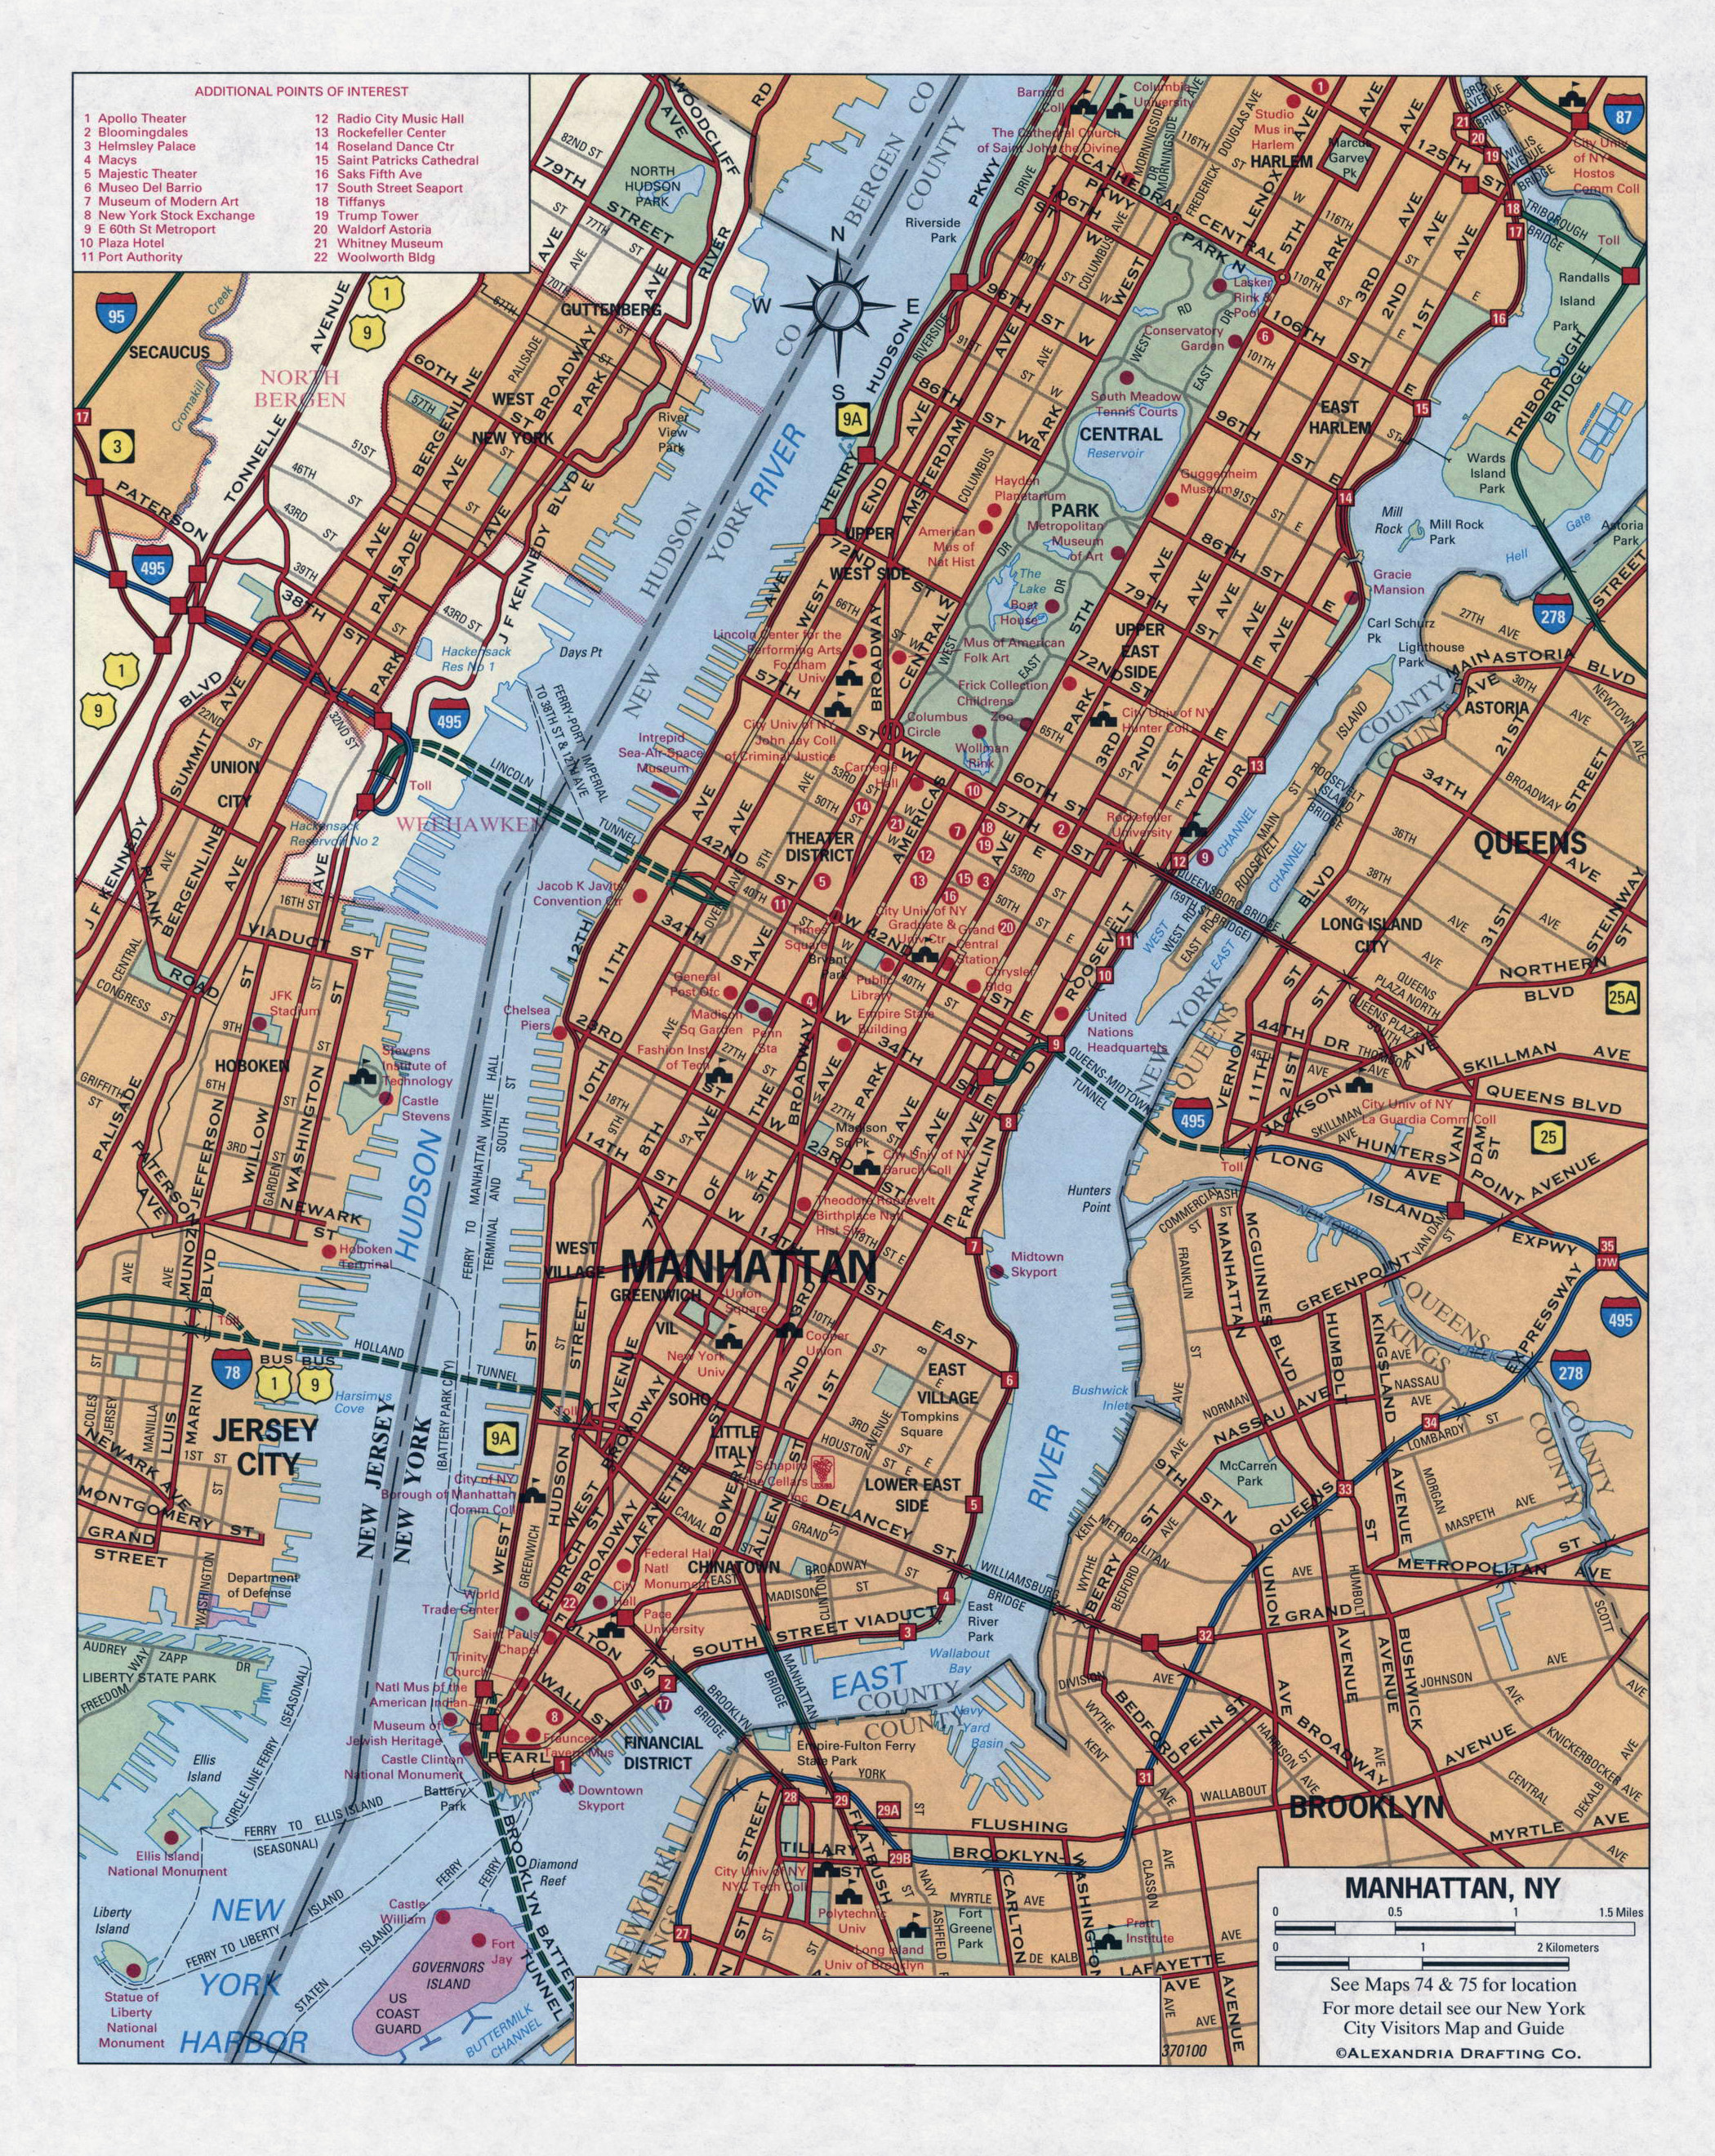 Detailed Map Of New York City.Large Detailed Road Map Of Manhattan New York City Manhattan Nyc